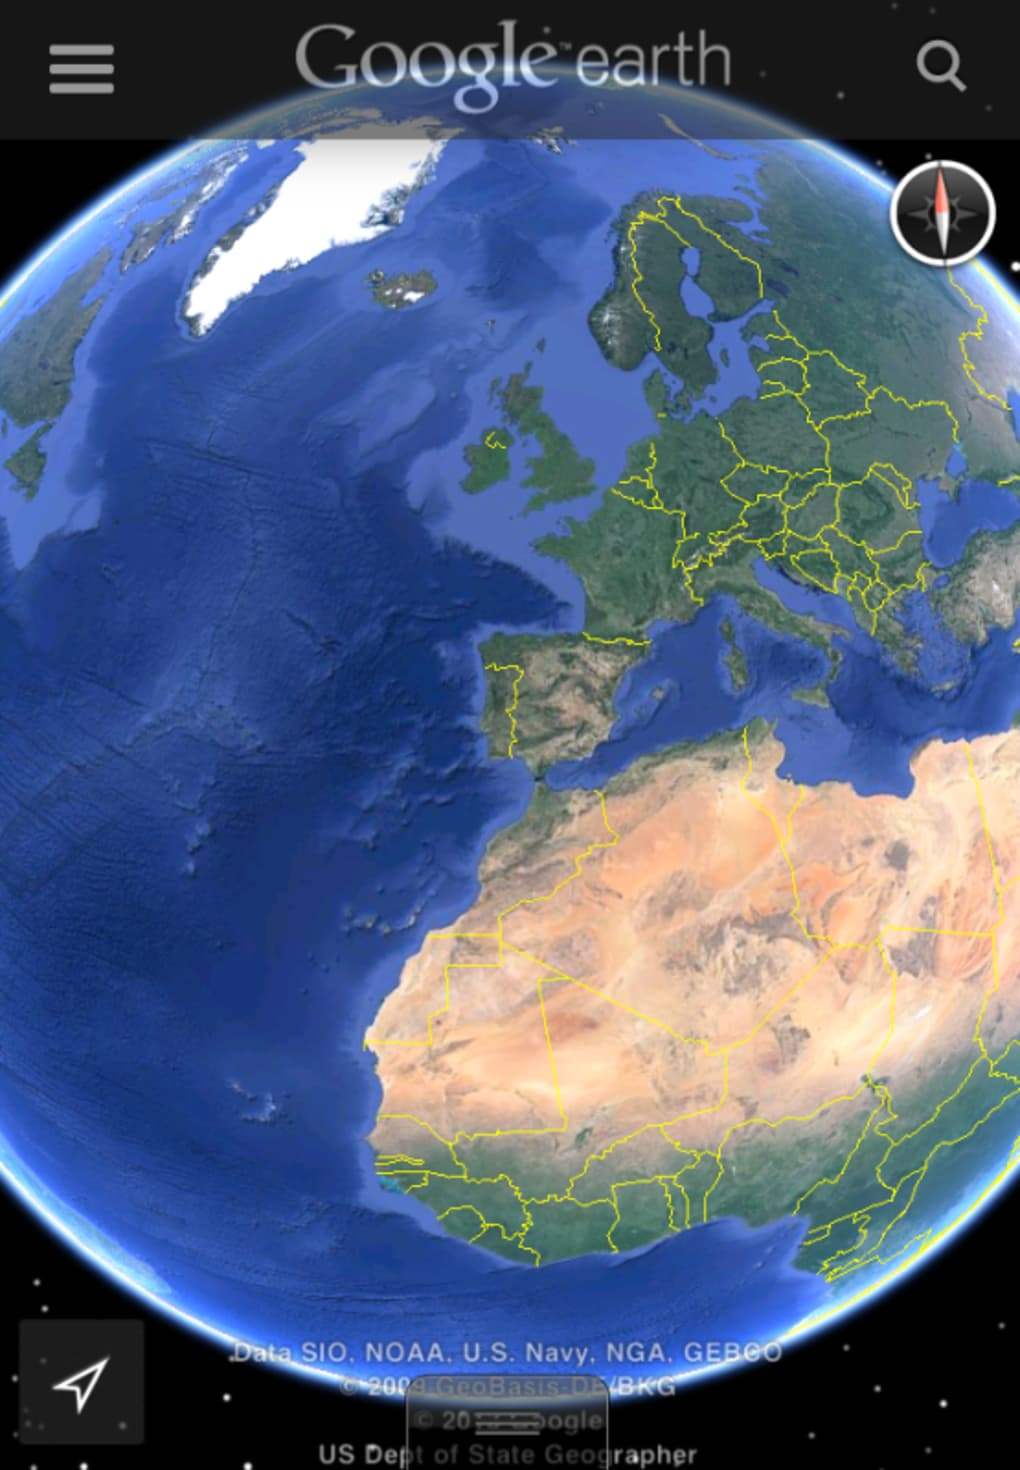 google earth pro free download for ipad